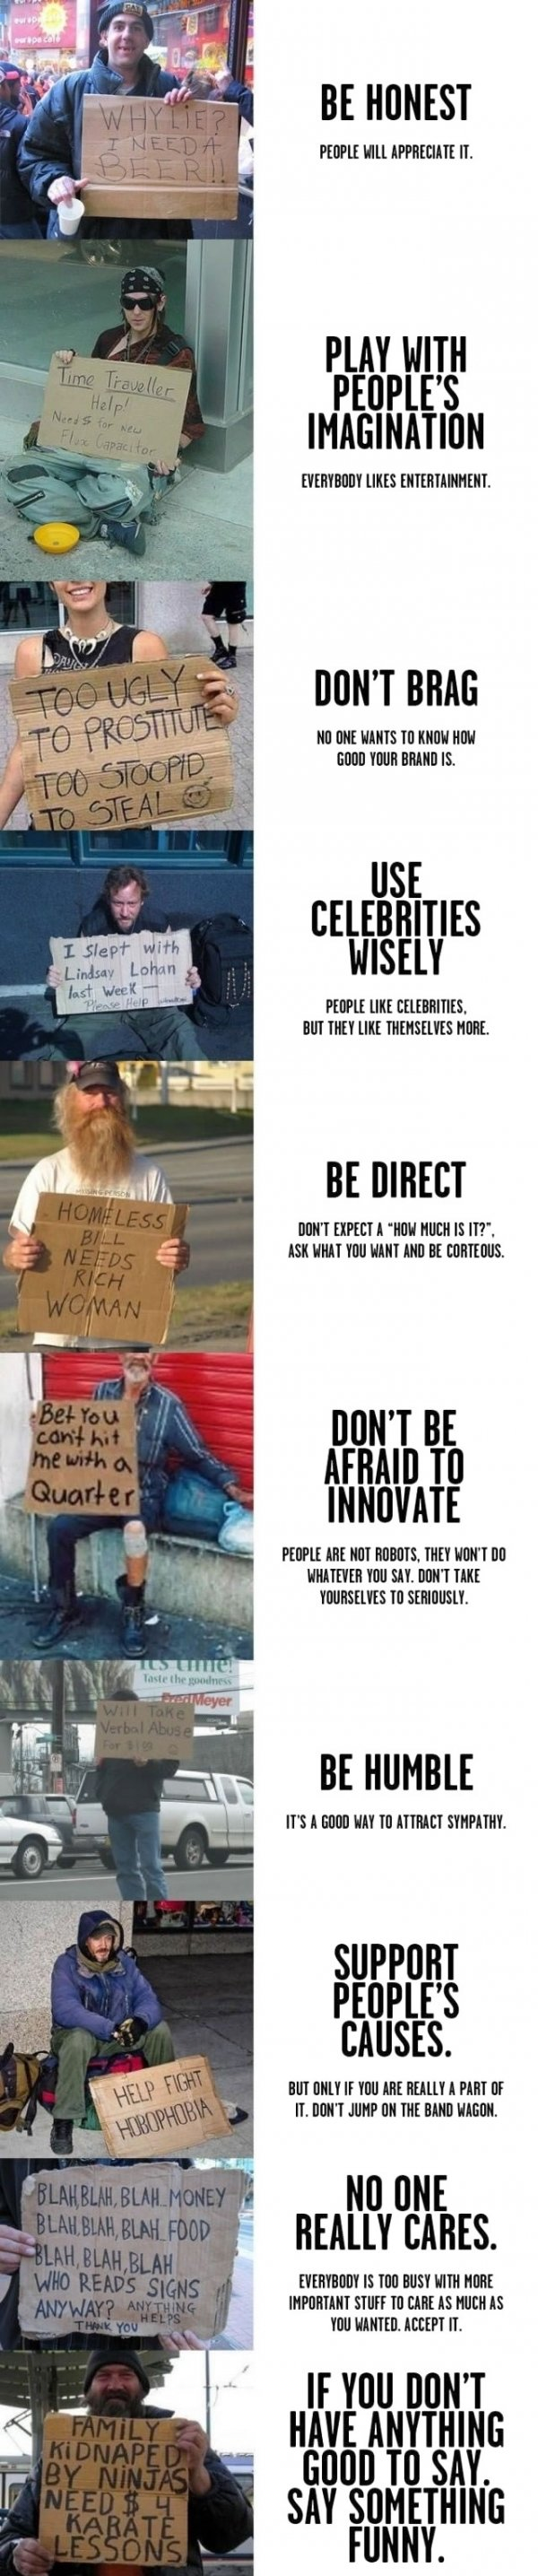 making homeless signs